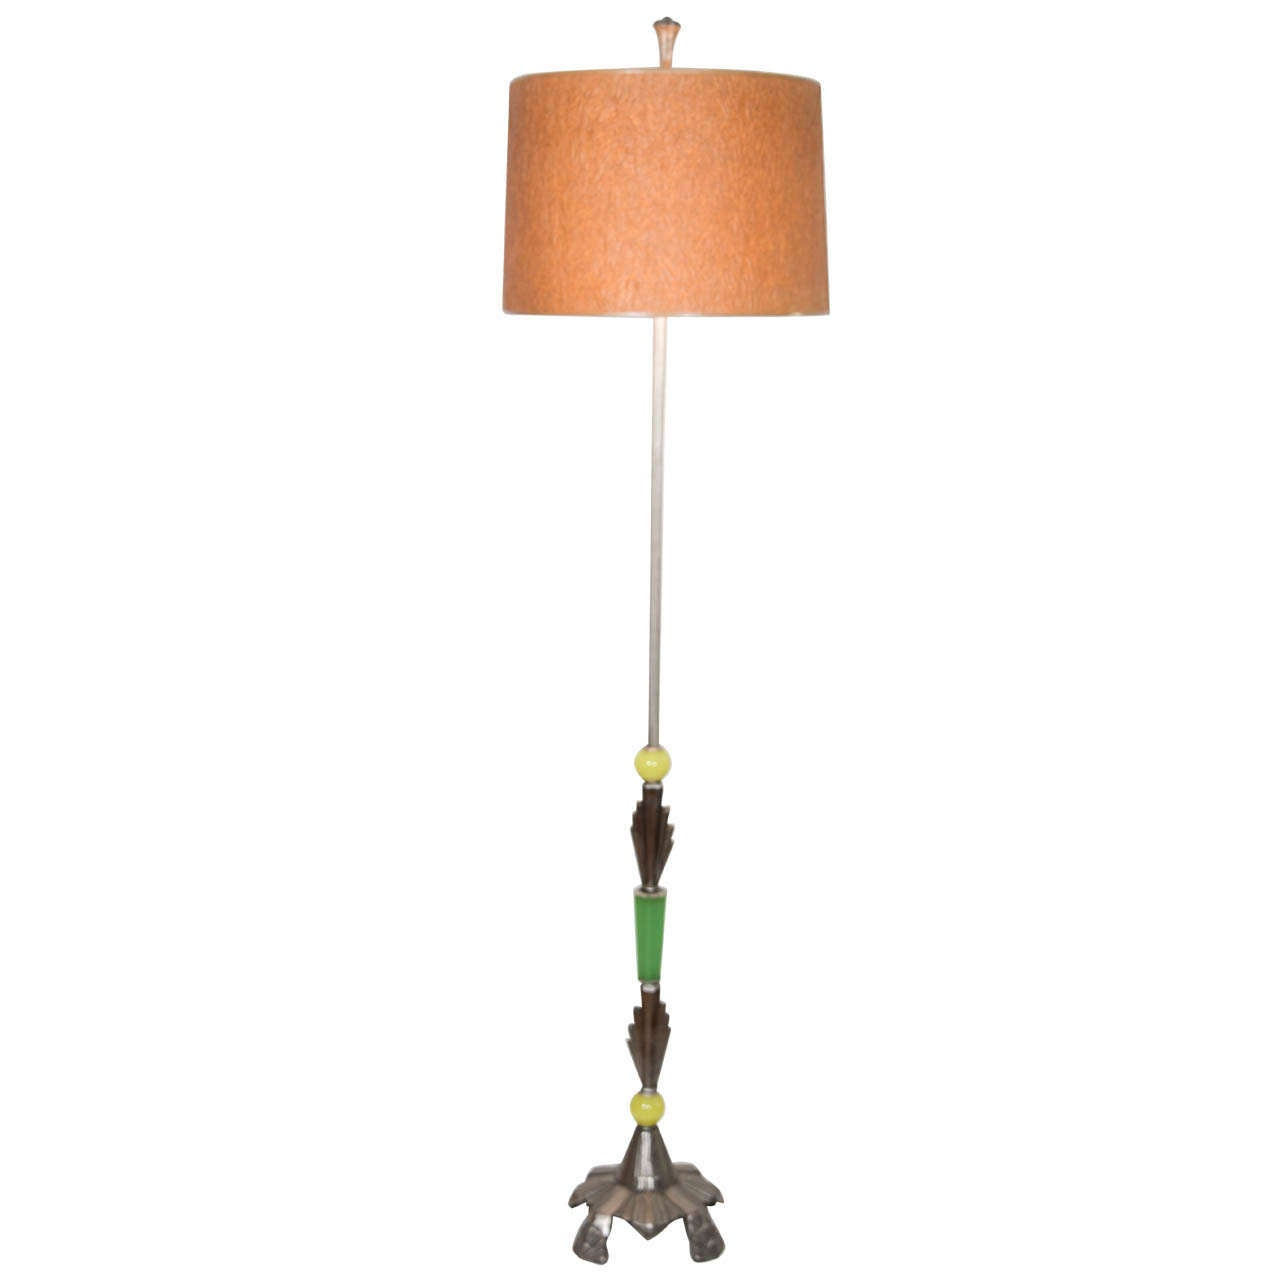 Art Deco Floor Lamp At 1stdibs